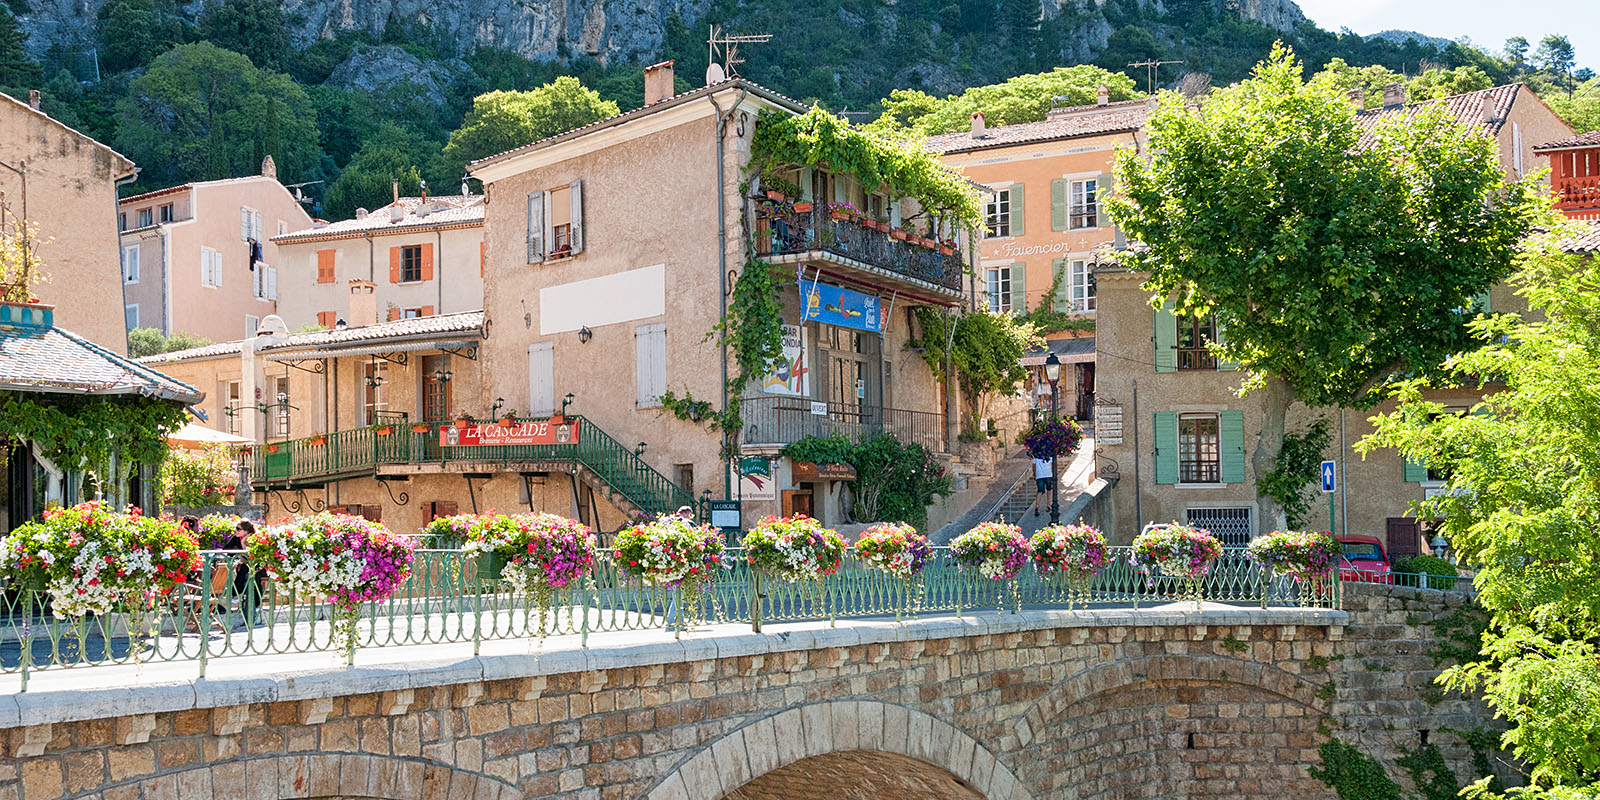 The kiechle family the area moustiers sainte marie - Office de tourisme de moustiers sainte marie ...